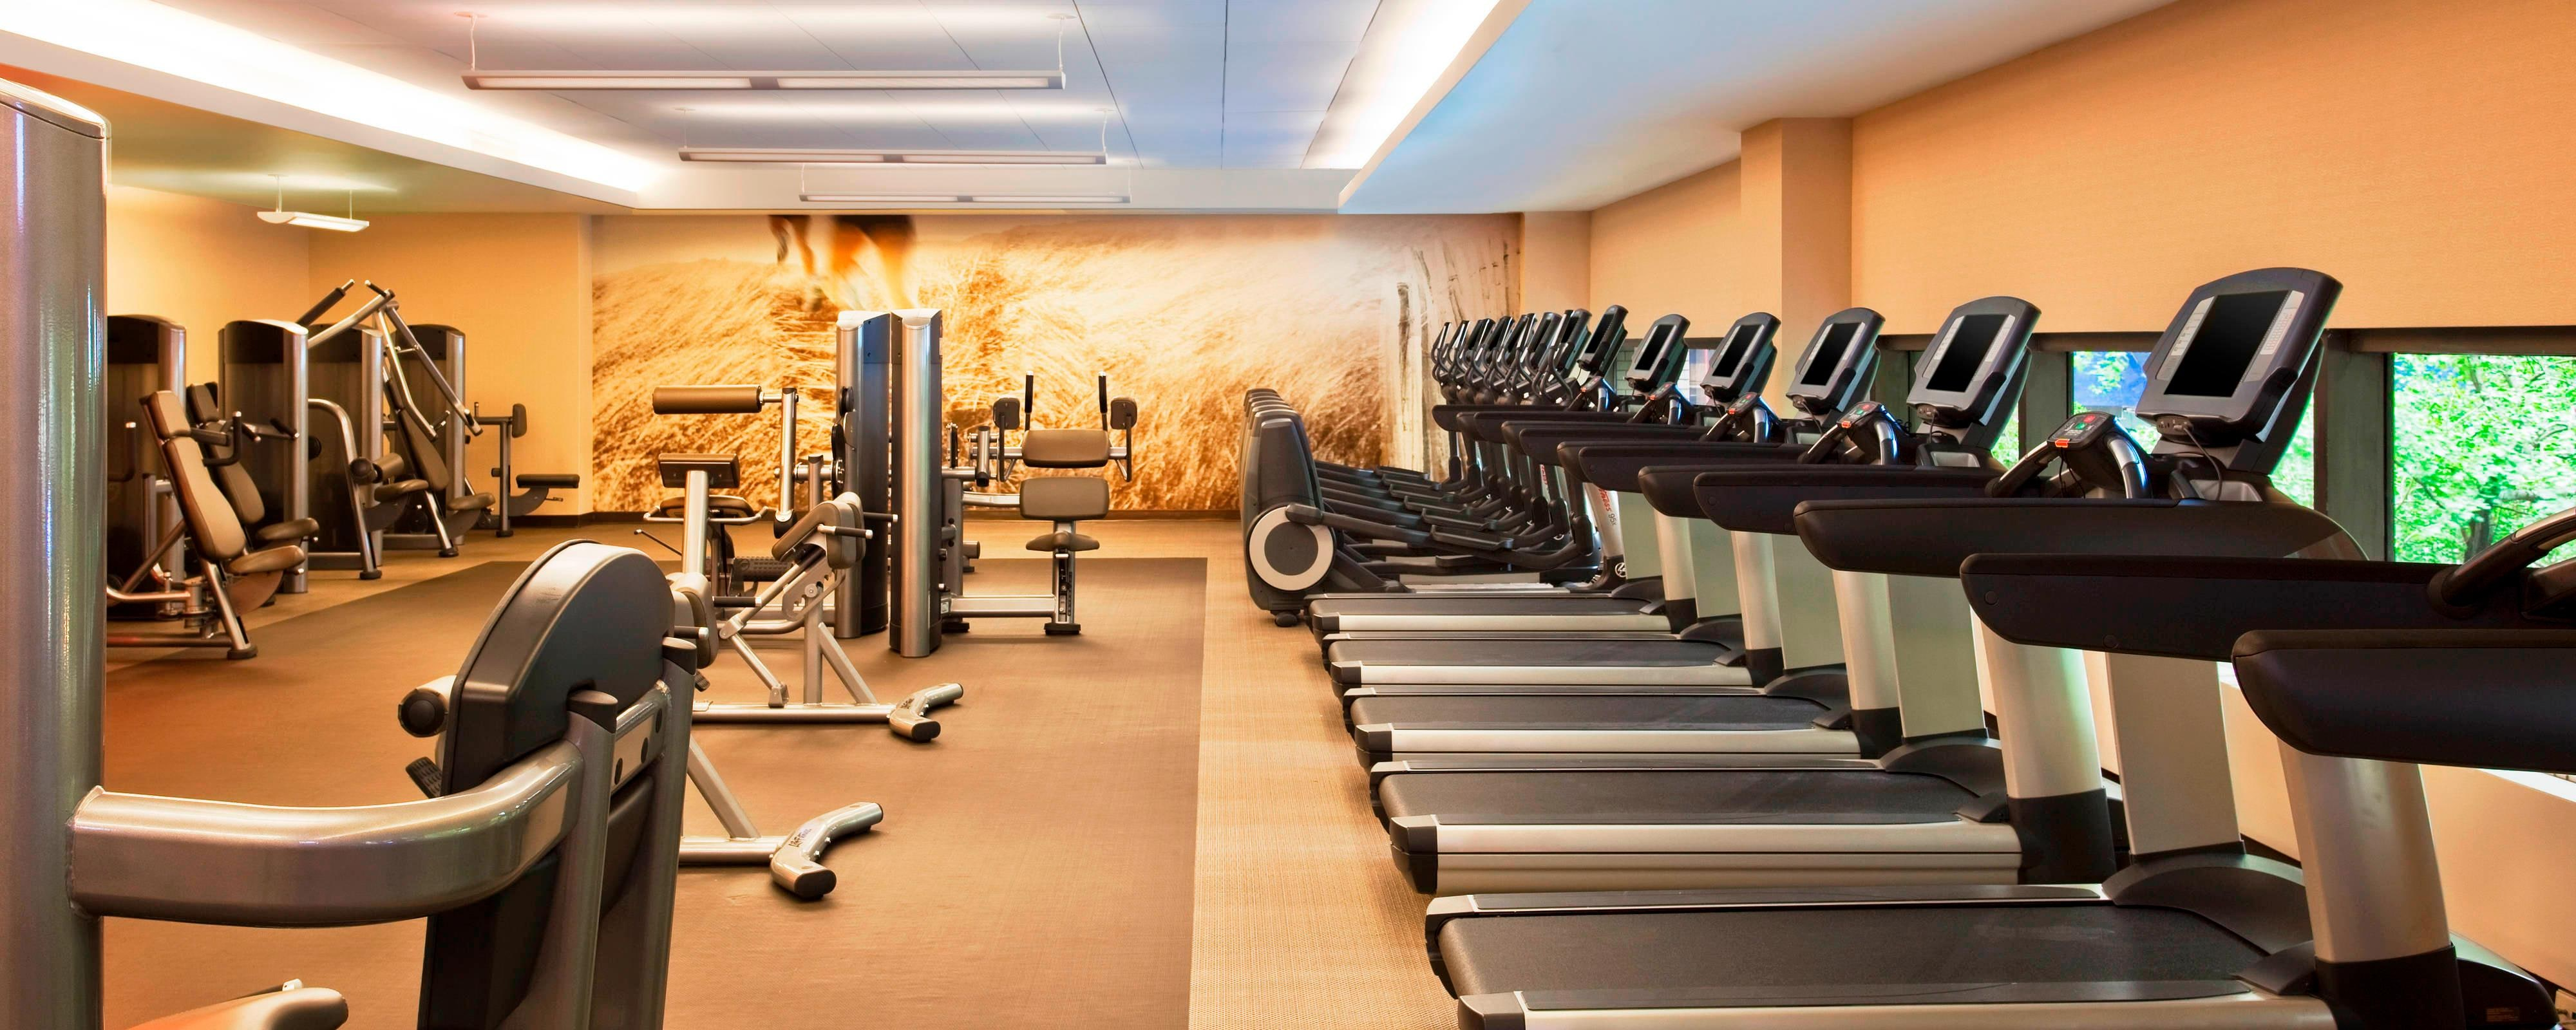 Grand central station hotel gym nyc the westin new york grand